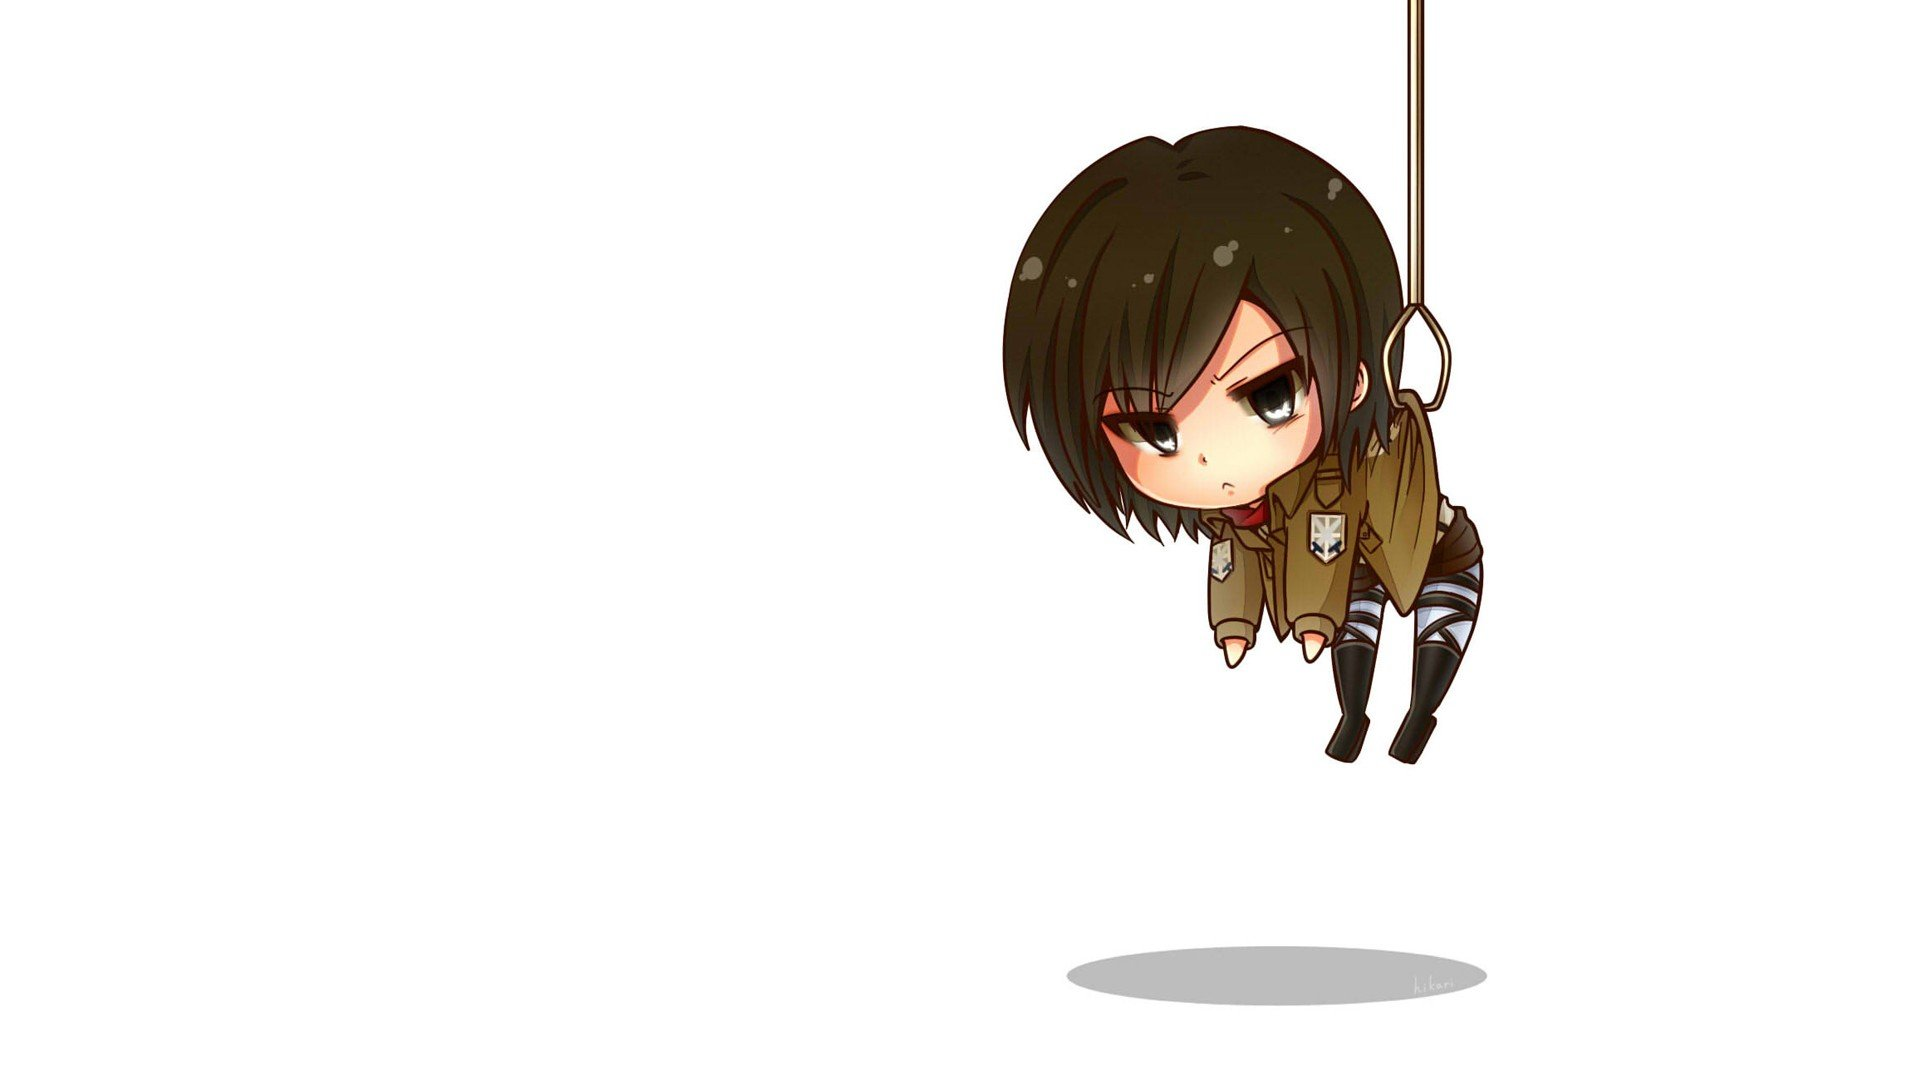 Mikasa Ackerman Wallpapers 1920x1080 Full Hd 1080p Desktop